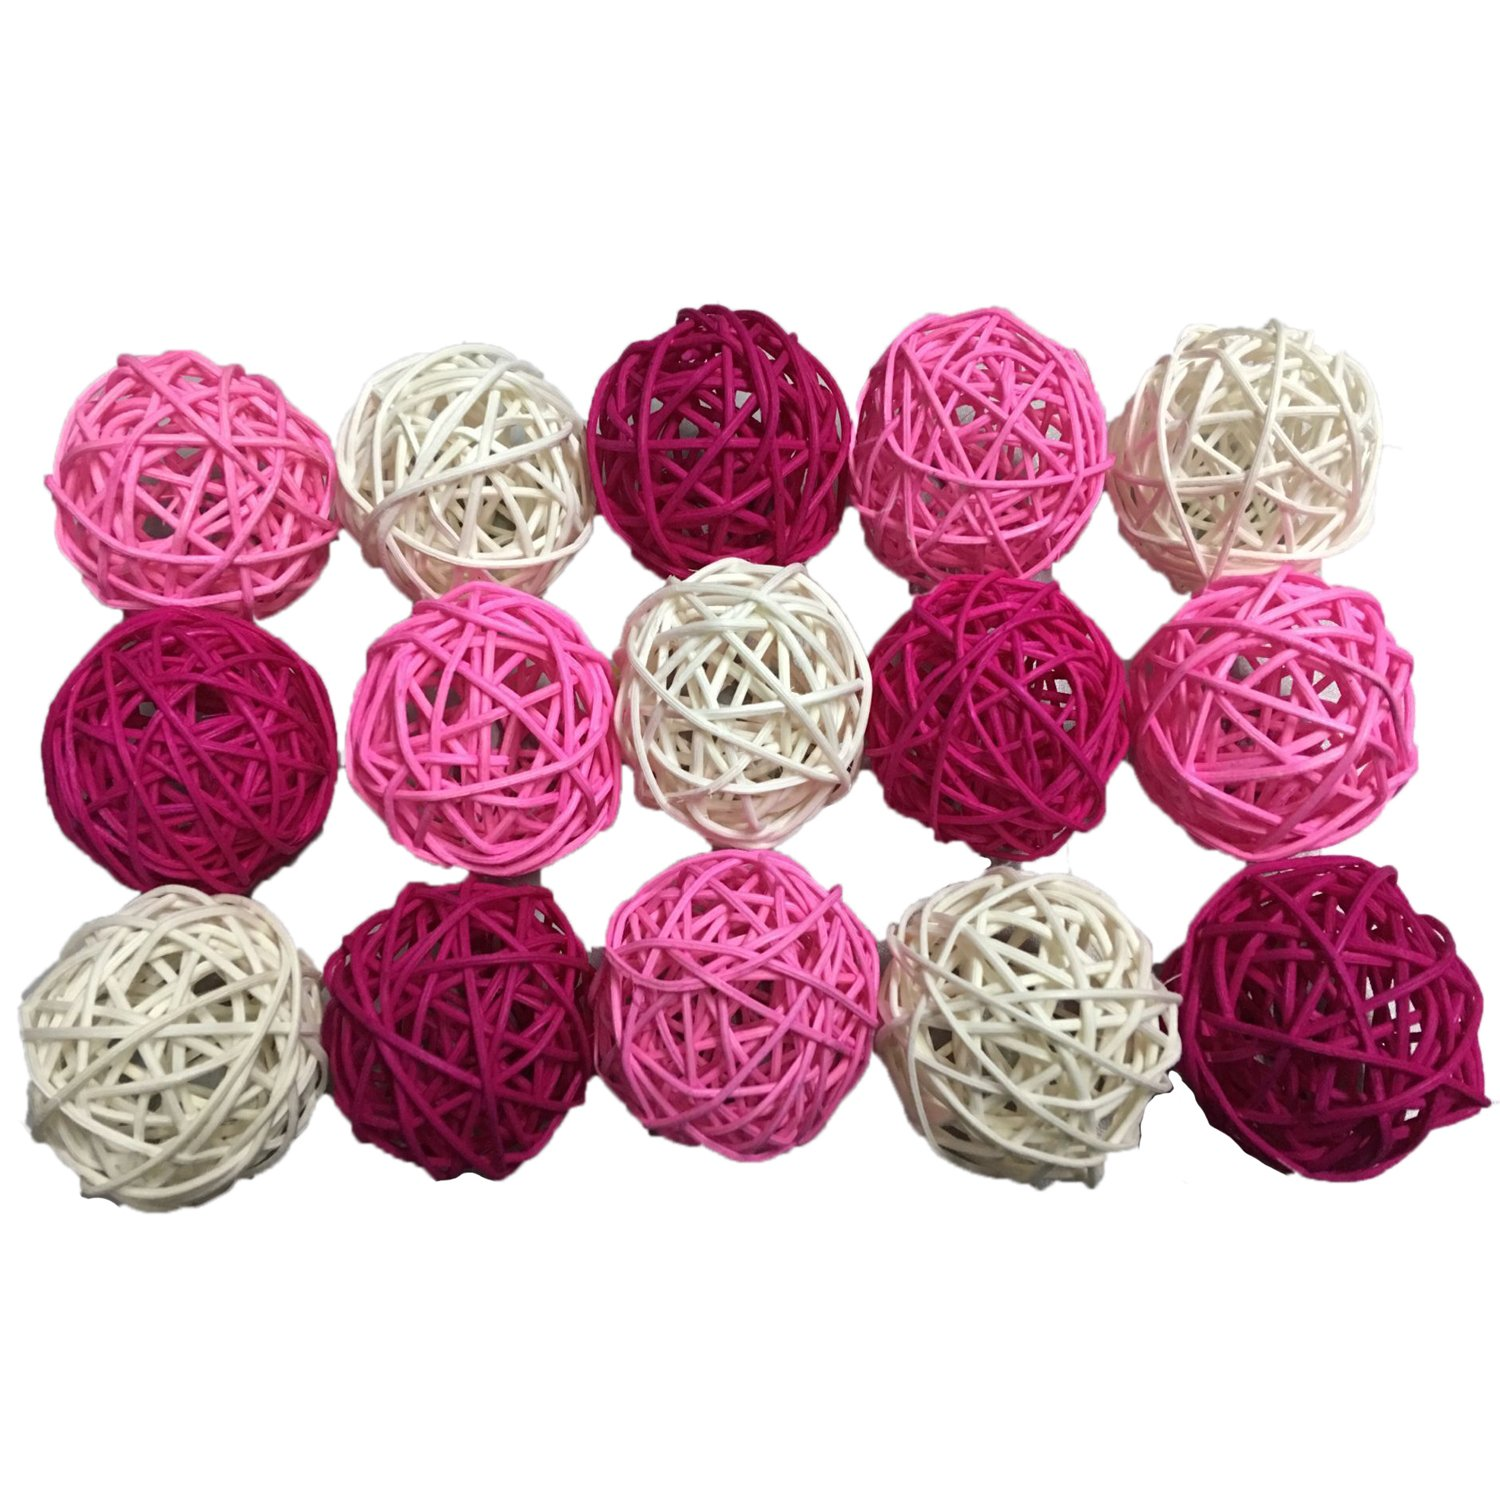 15PCS Mixed Pink Hot Pink White Decorative Wicker Rattan Ball Wedding Girl Birthday Baby Shower Nursery Christmas Party Decoration DreammadeStudio